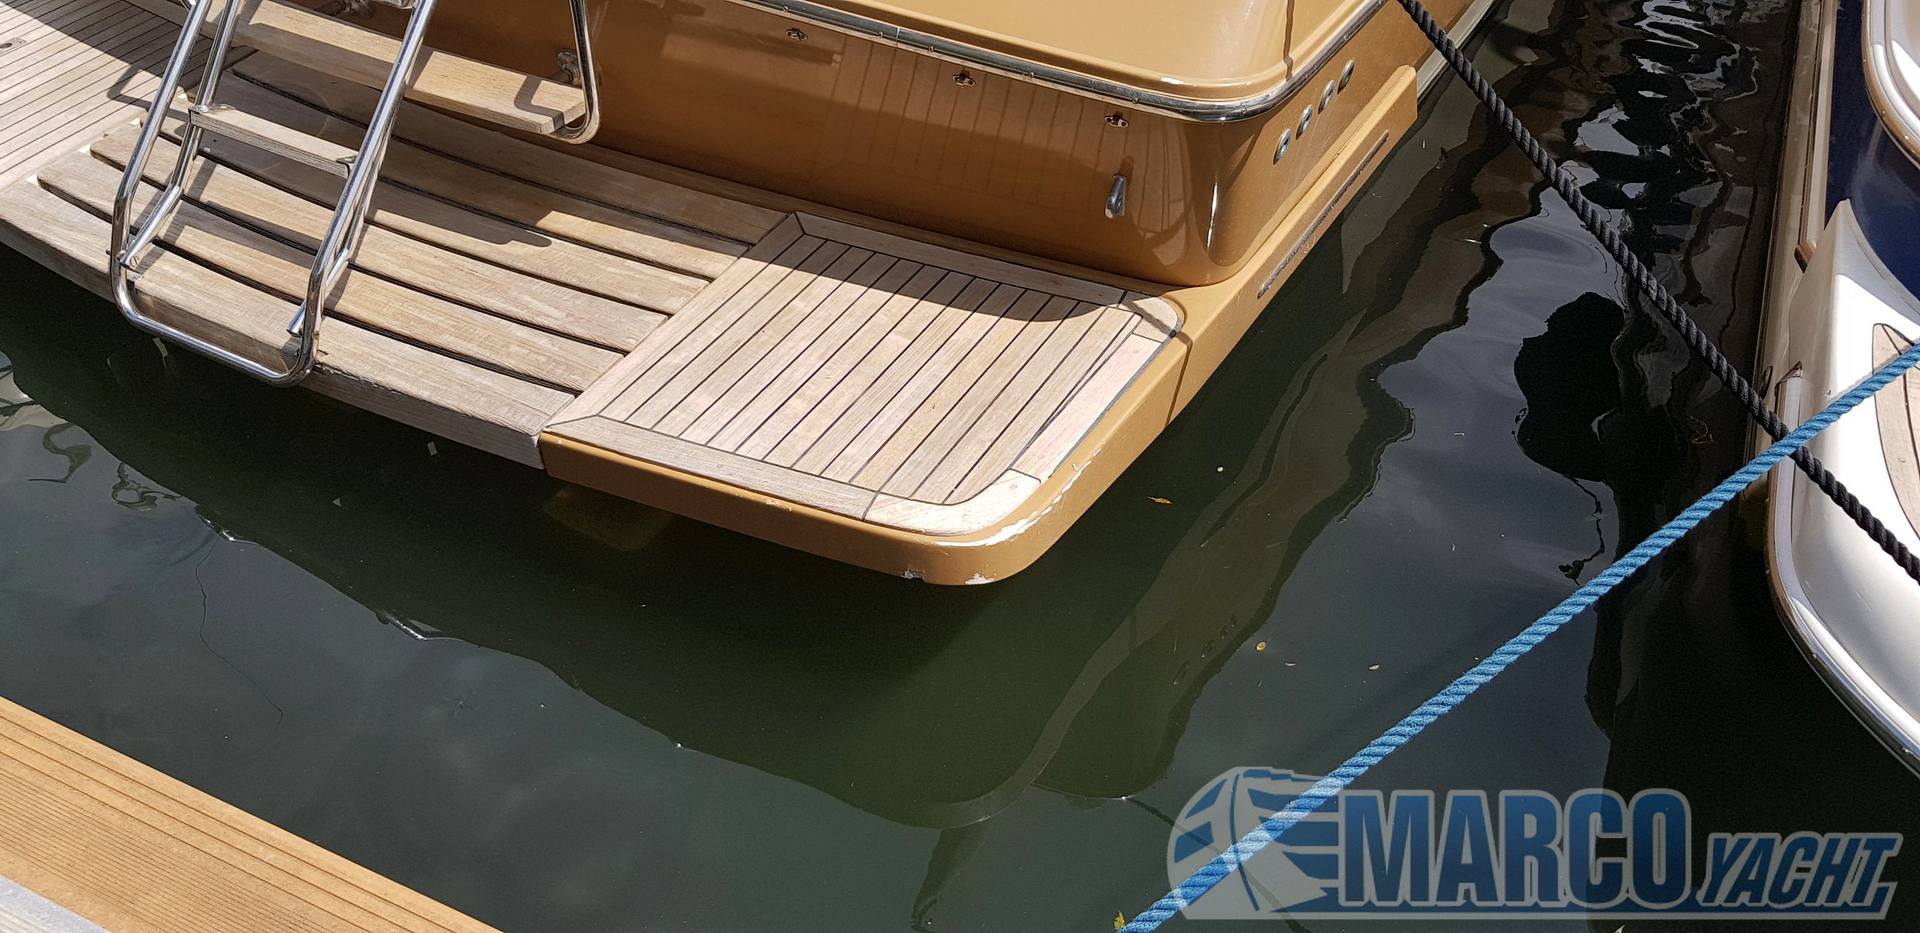 Ilver Cimawa 35 Motor boat used for sale